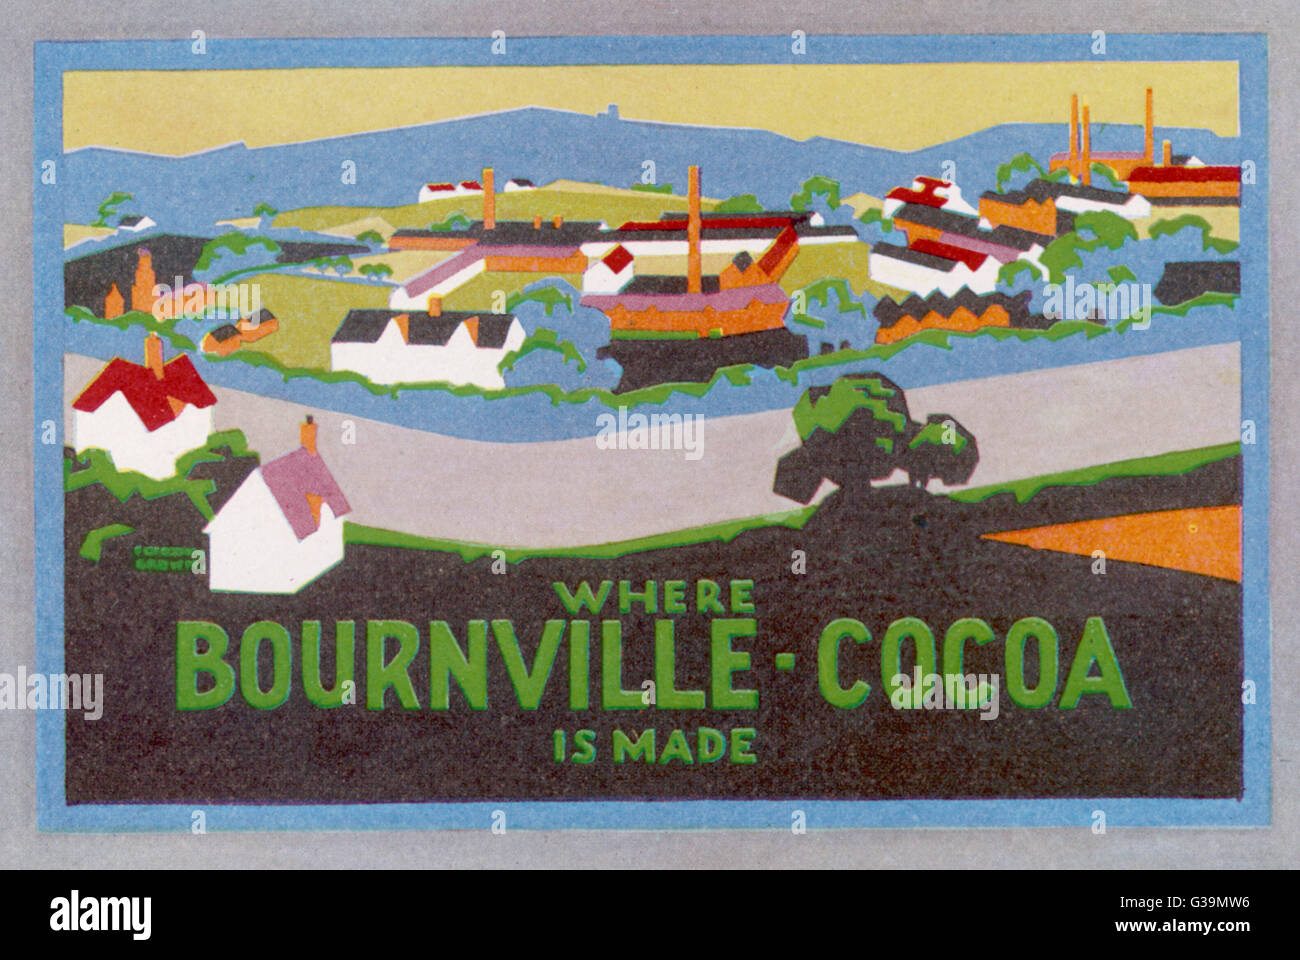 'WHERE BOURNVILLE COCOA  IS MADE'         Date: 1921 - Stock Image